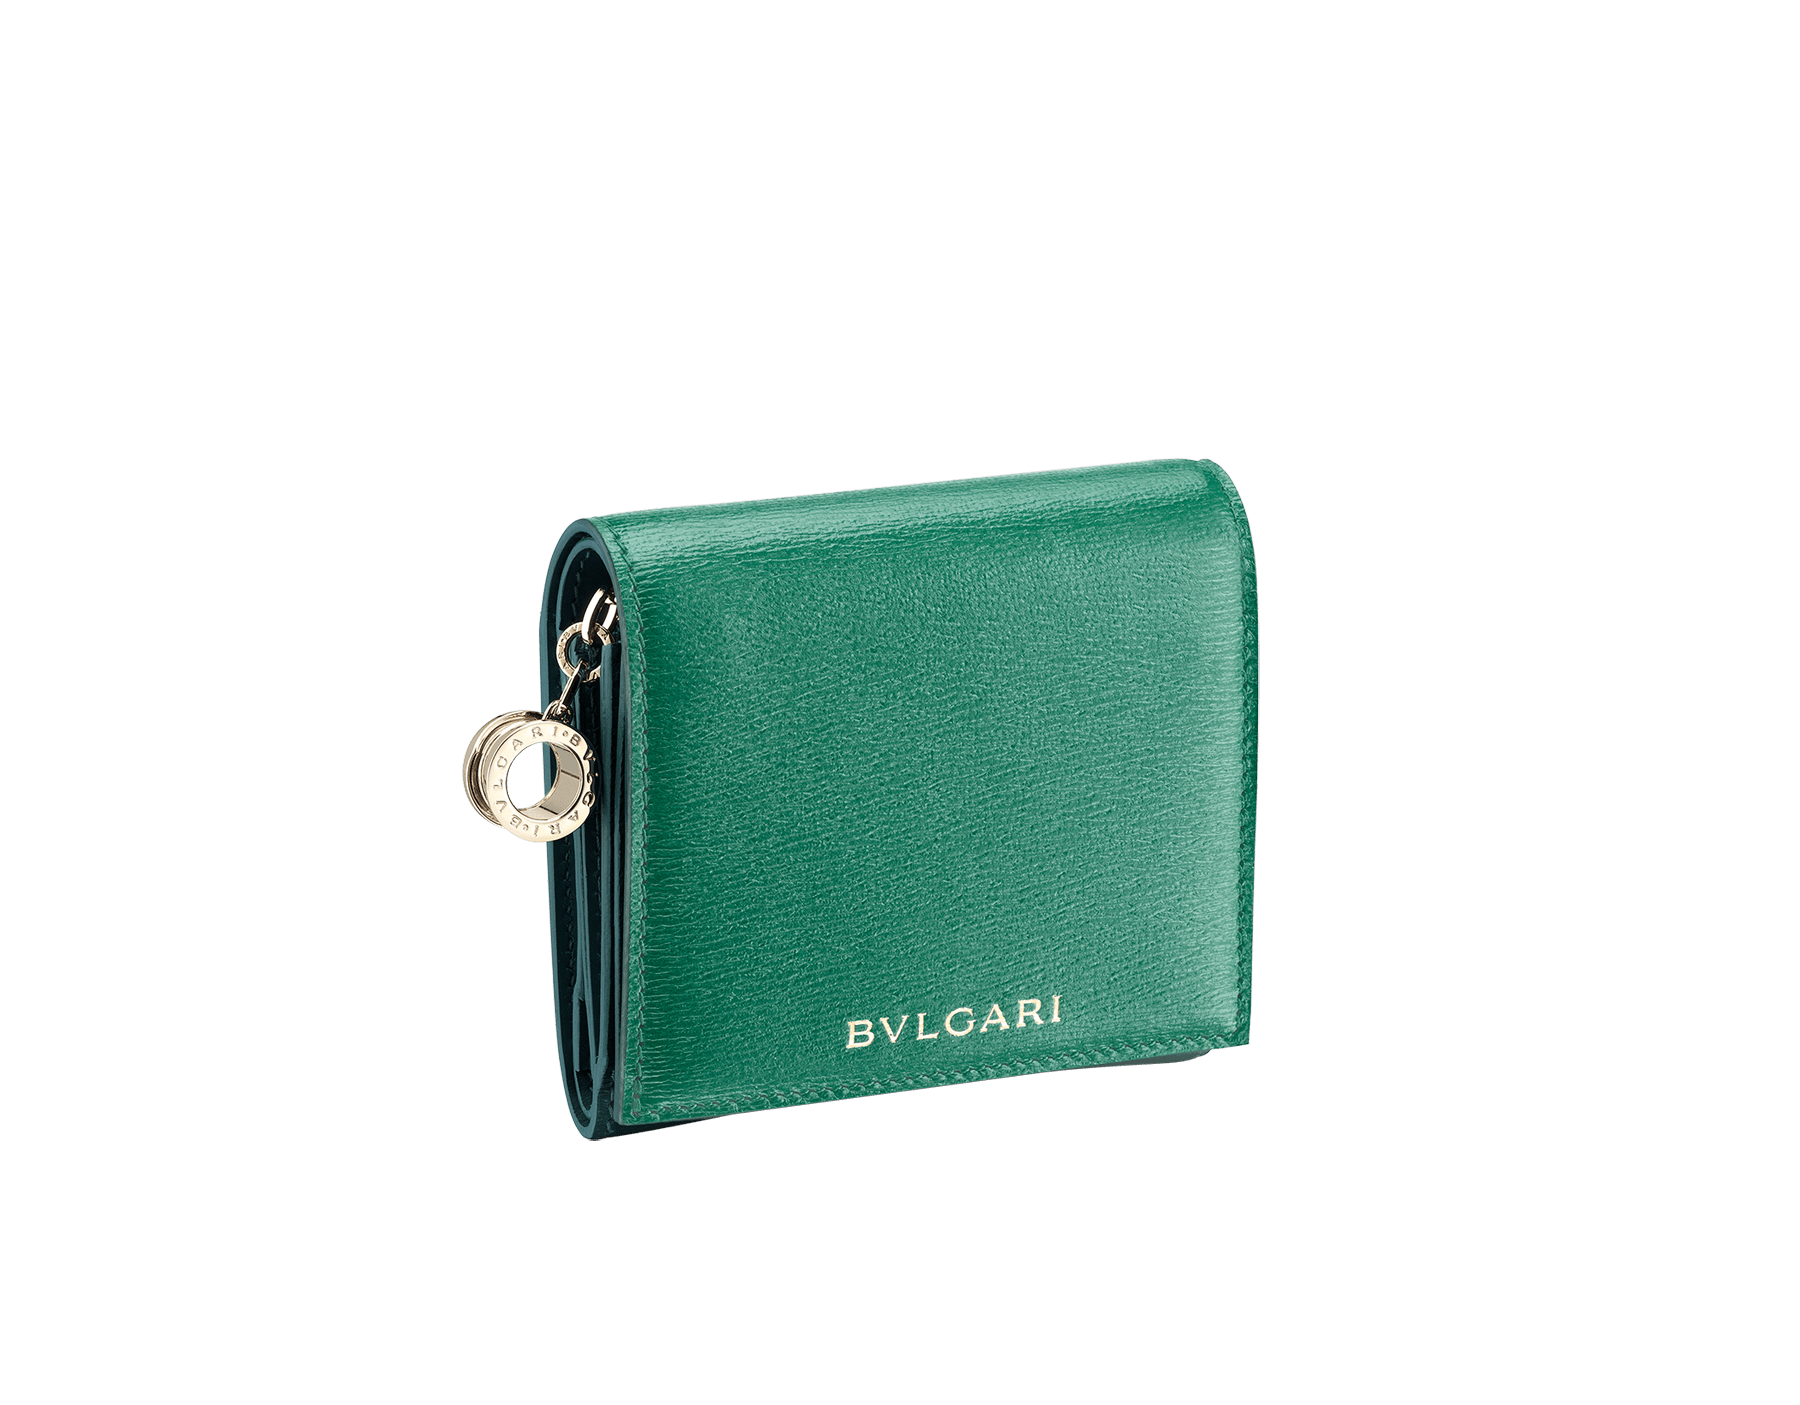 B.zero1 super compact wallet in emerald green and forest emerald goatskin. Iconic B.zero1 charm in light gold plated brass. 289138 image 1